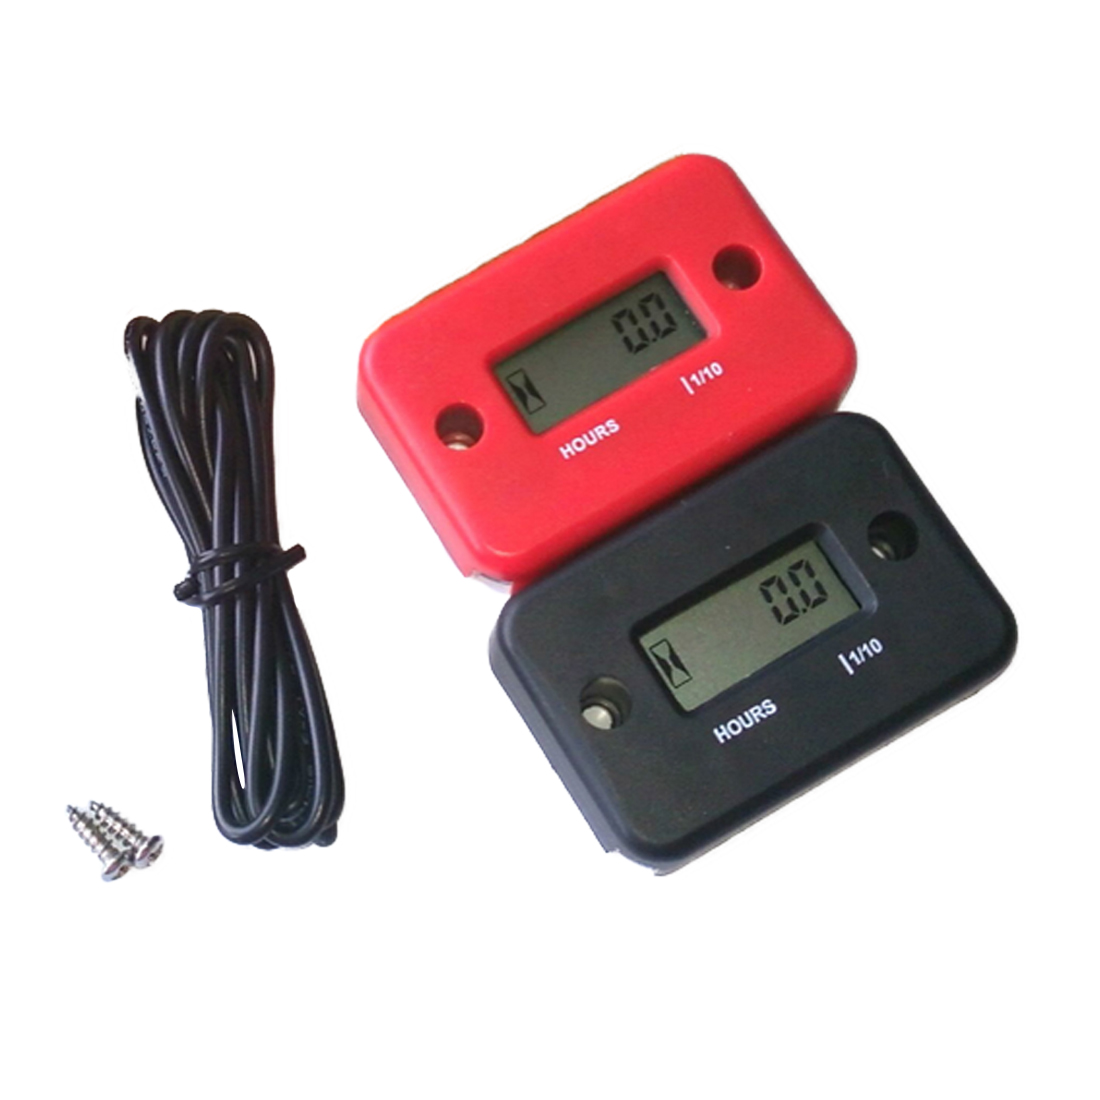 Digital Engine Hour Meter Inductive Waterproof LCD Hourmeter for Motorcycle Dirt Bike Marine ATV Snowmobile image